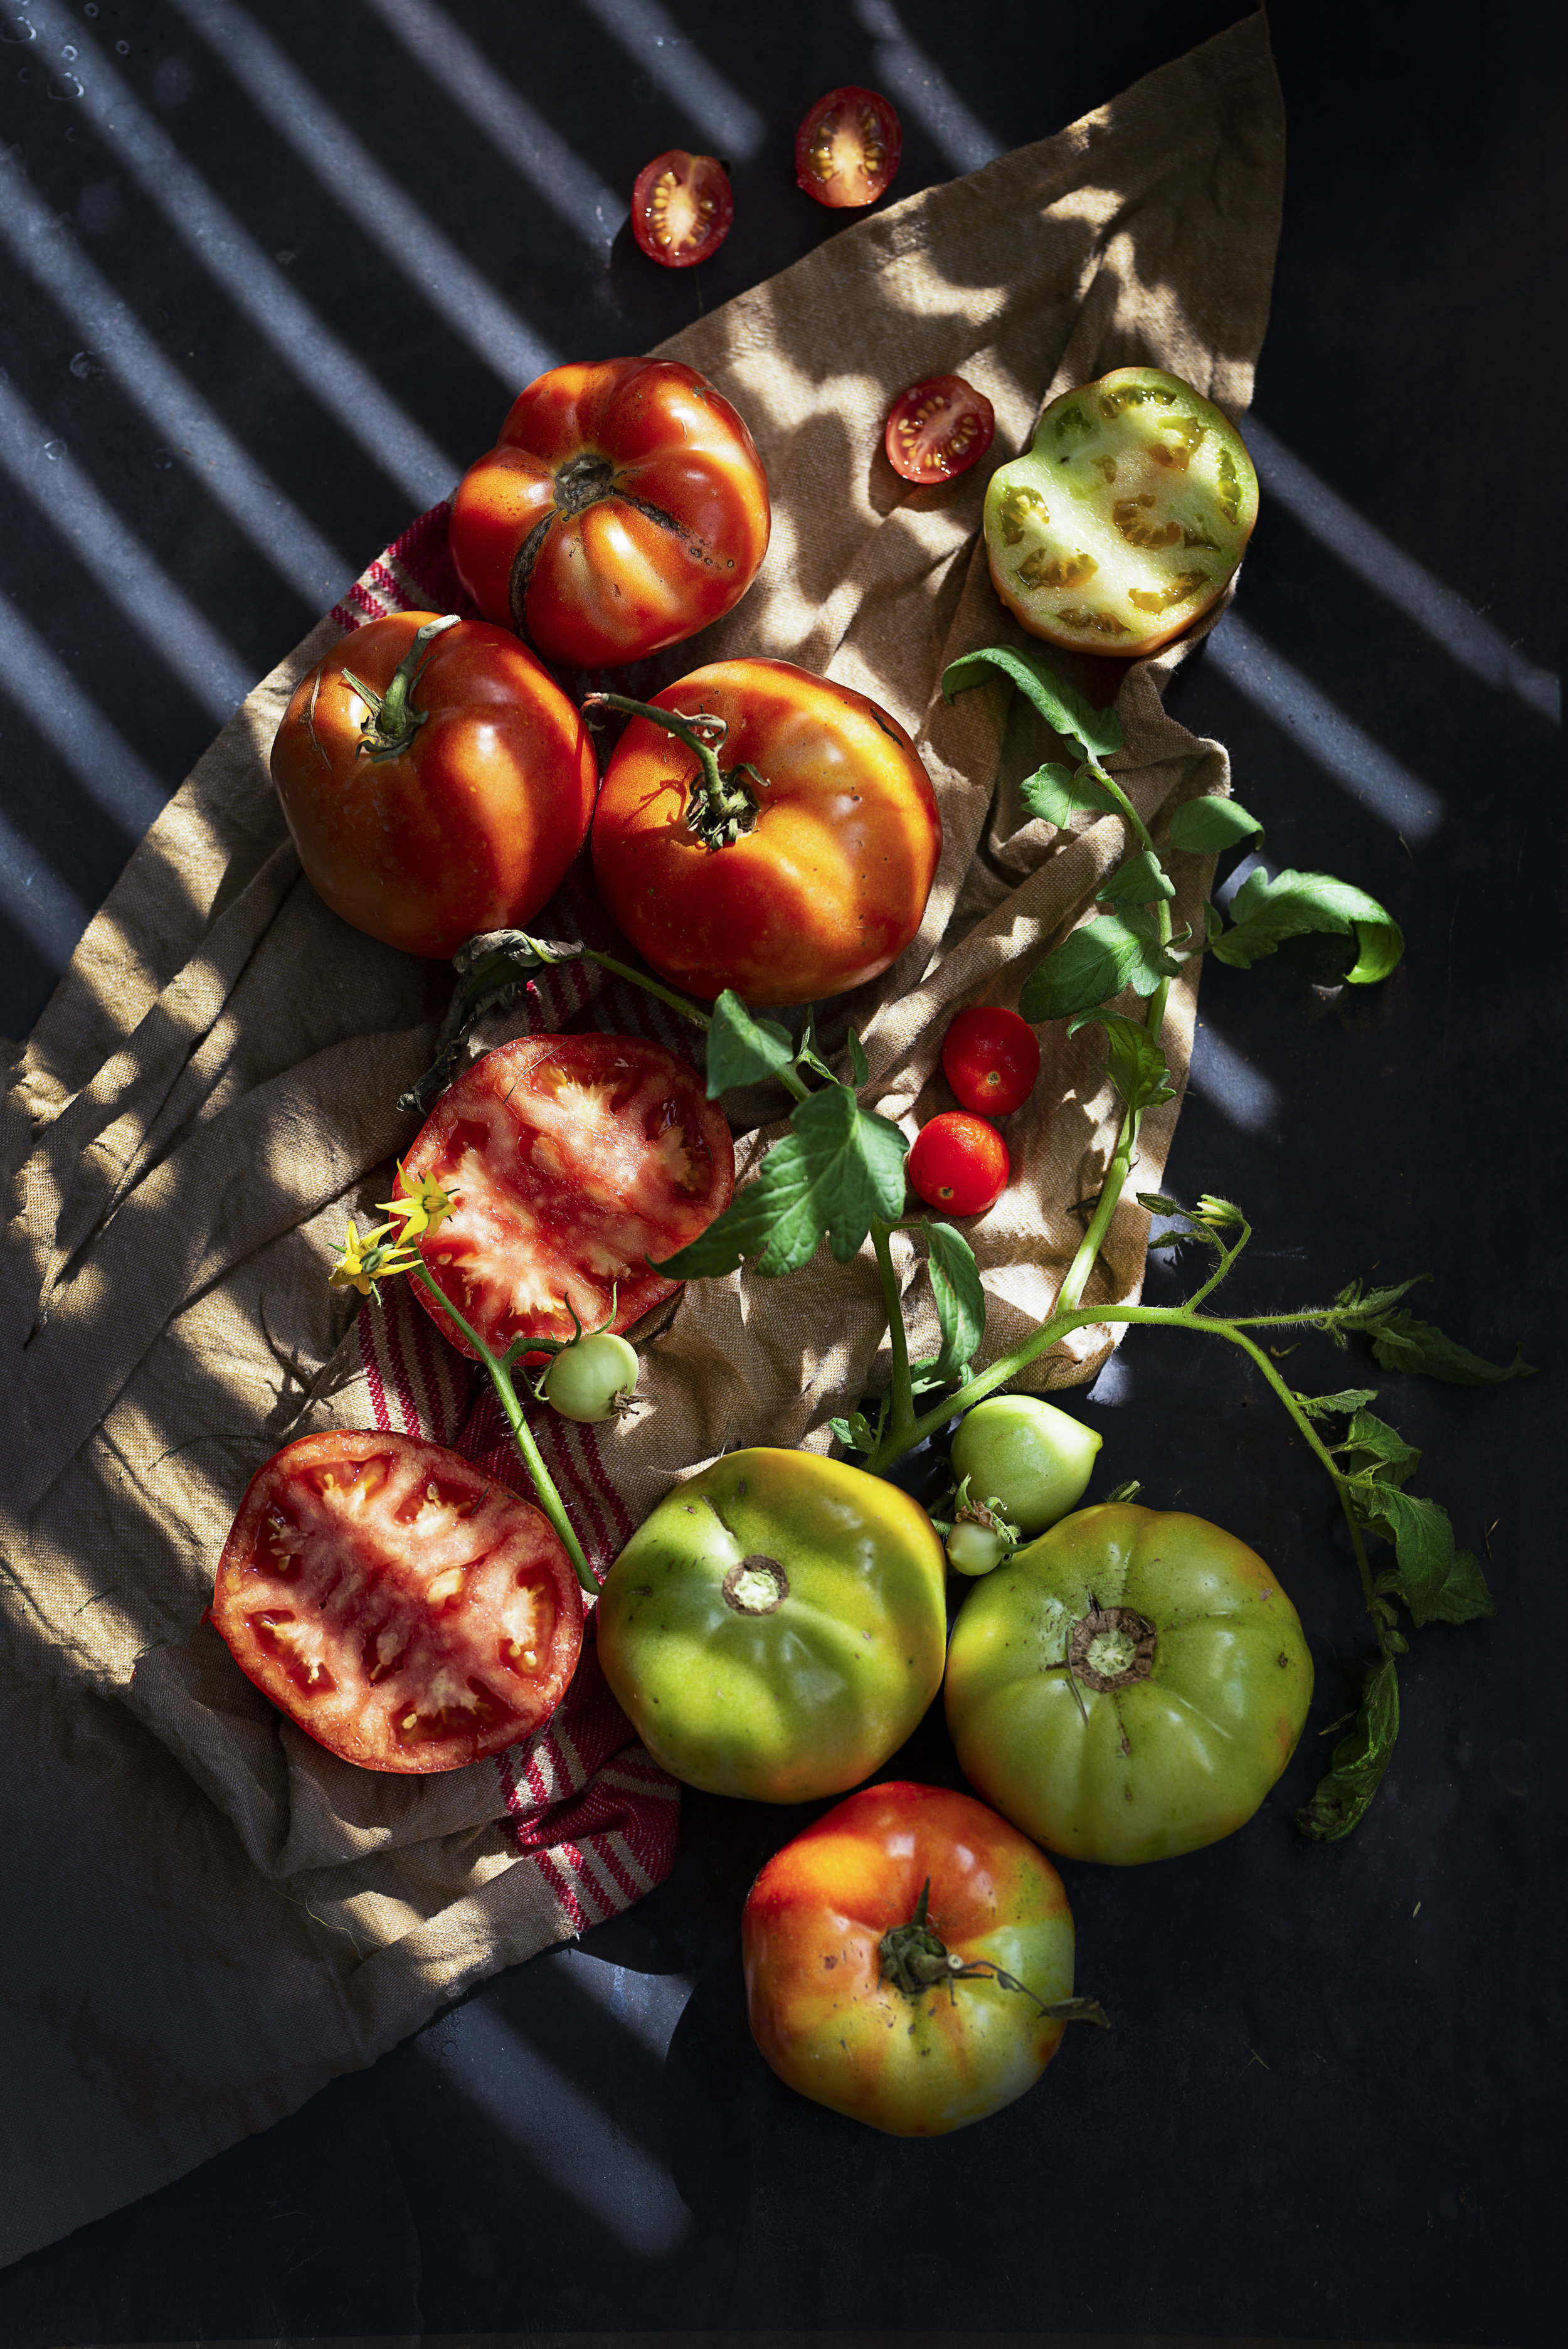 Tomatoes-HR-SimiJois-2018.jpg